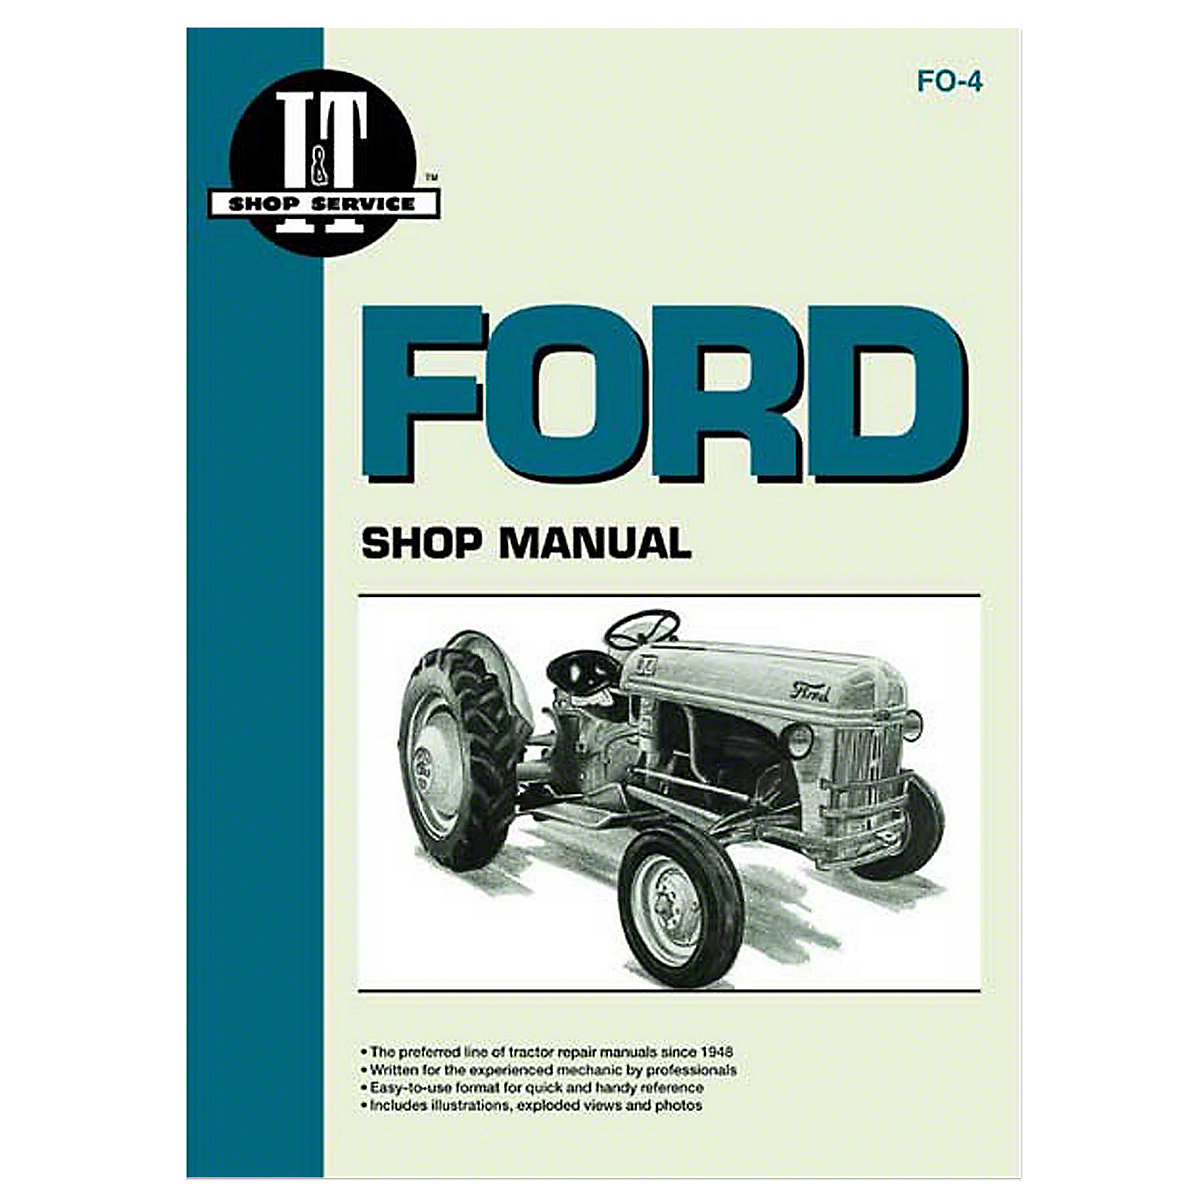 fo4 i t shop service manual rh steinertractor com Ford 8N ford 9n tractor repair manual